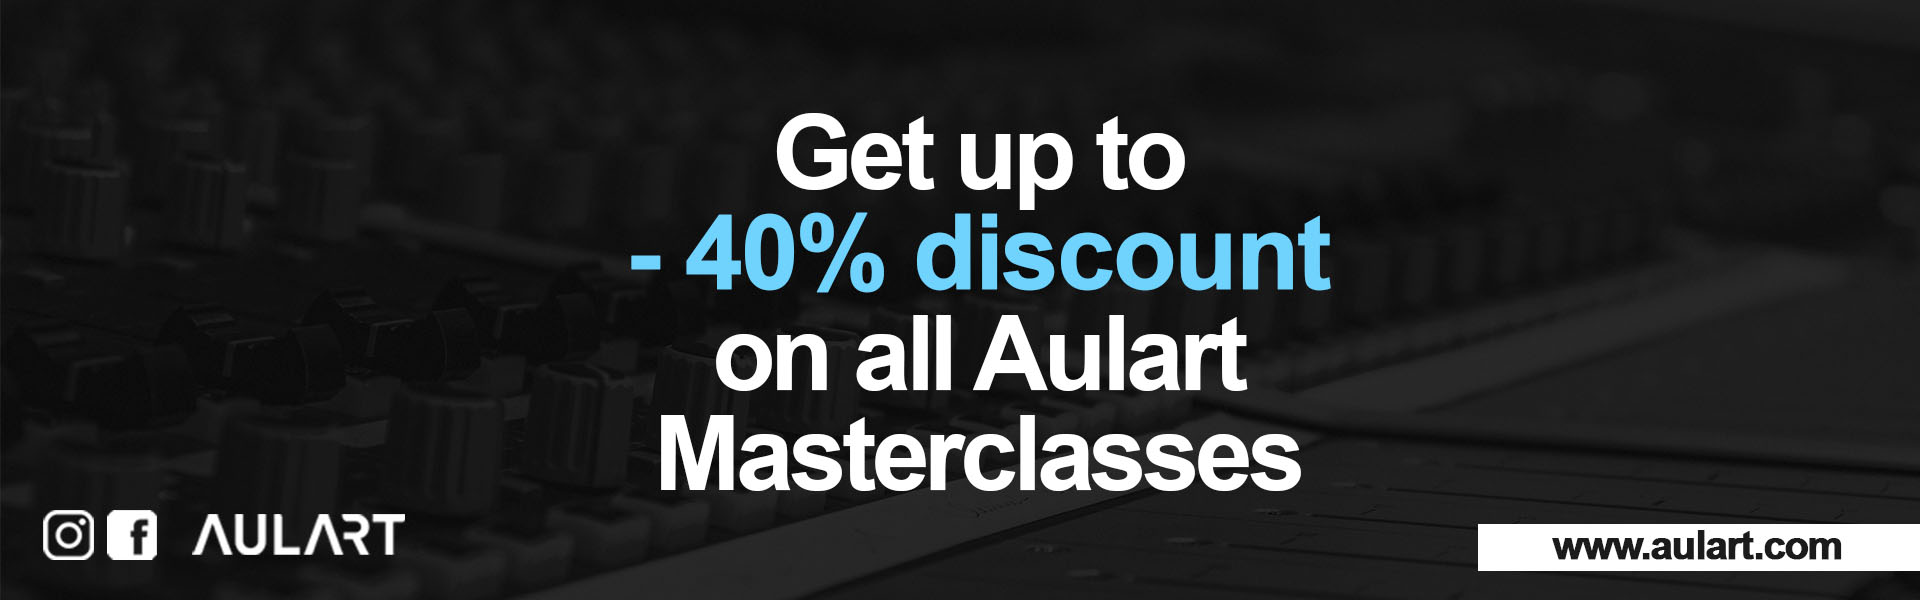 Subscribe and get 40% discount with Aulart